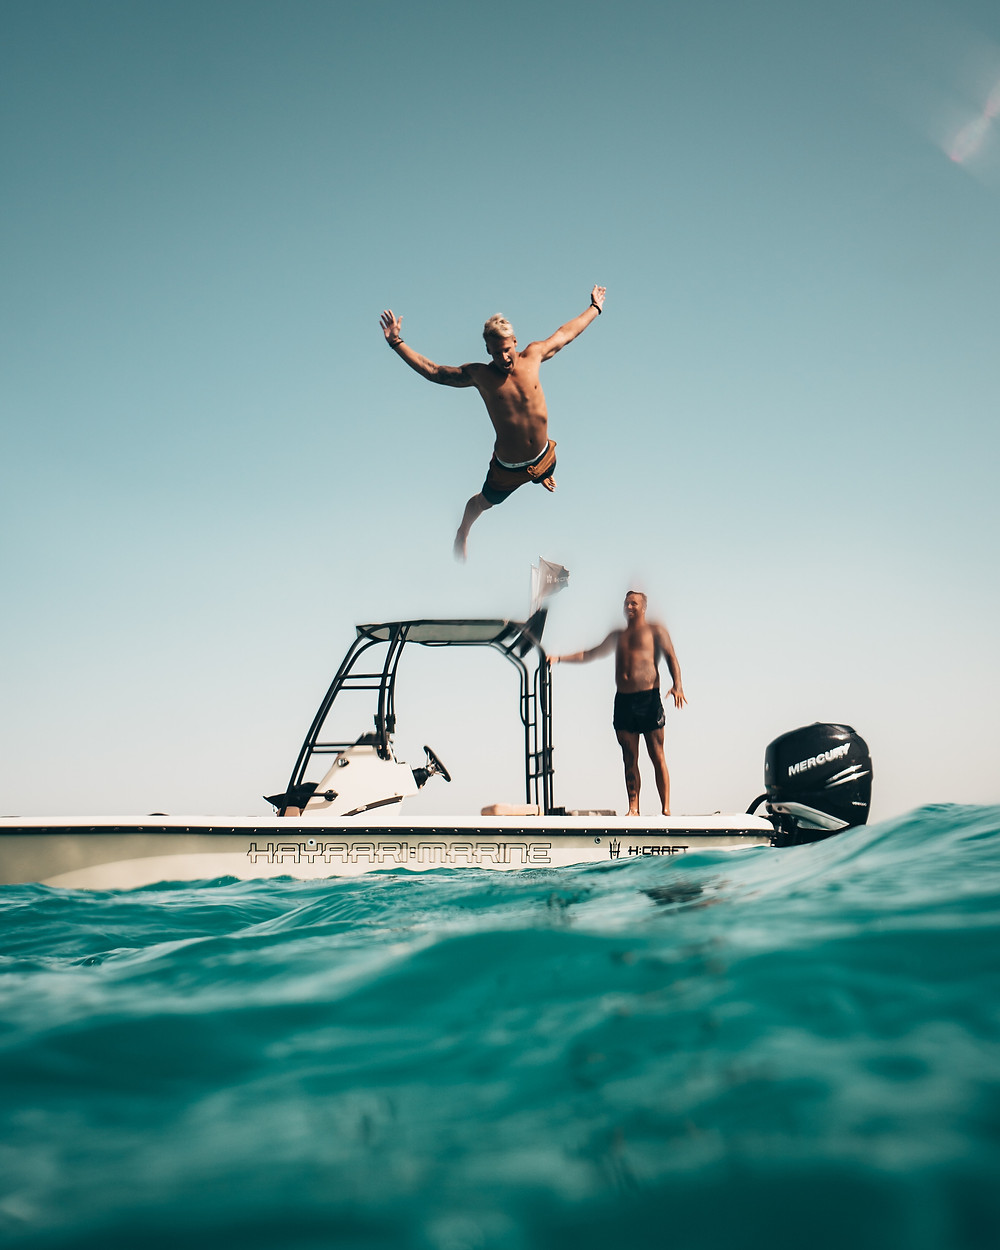 Jumping off boat in summer